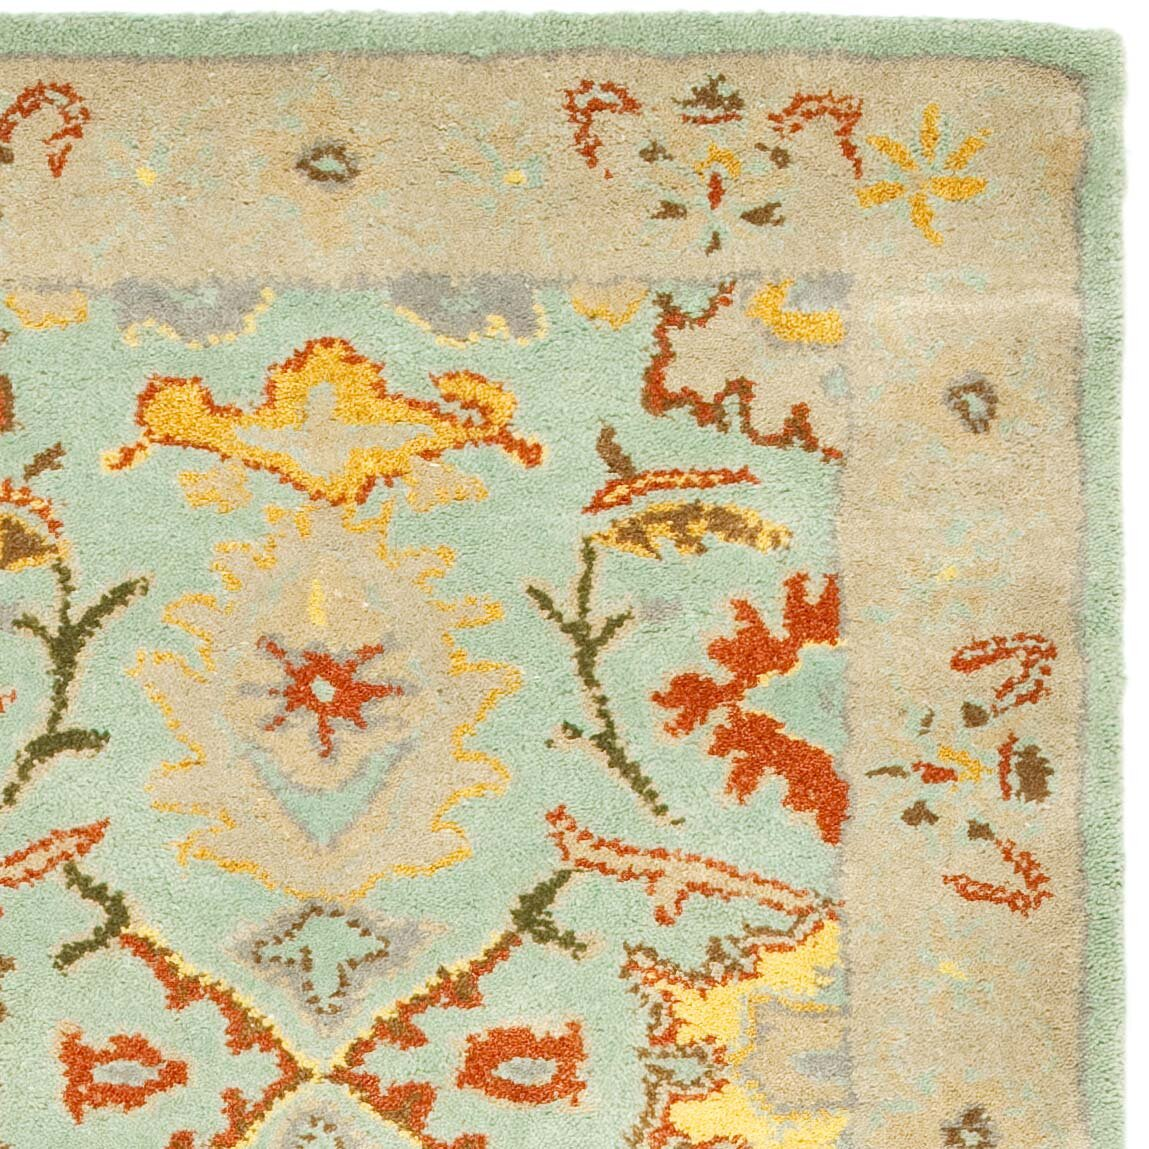 Dog Eating Wool Rug: Darby Home Co Heritage Light Blue & Ivory Rug & Reviews